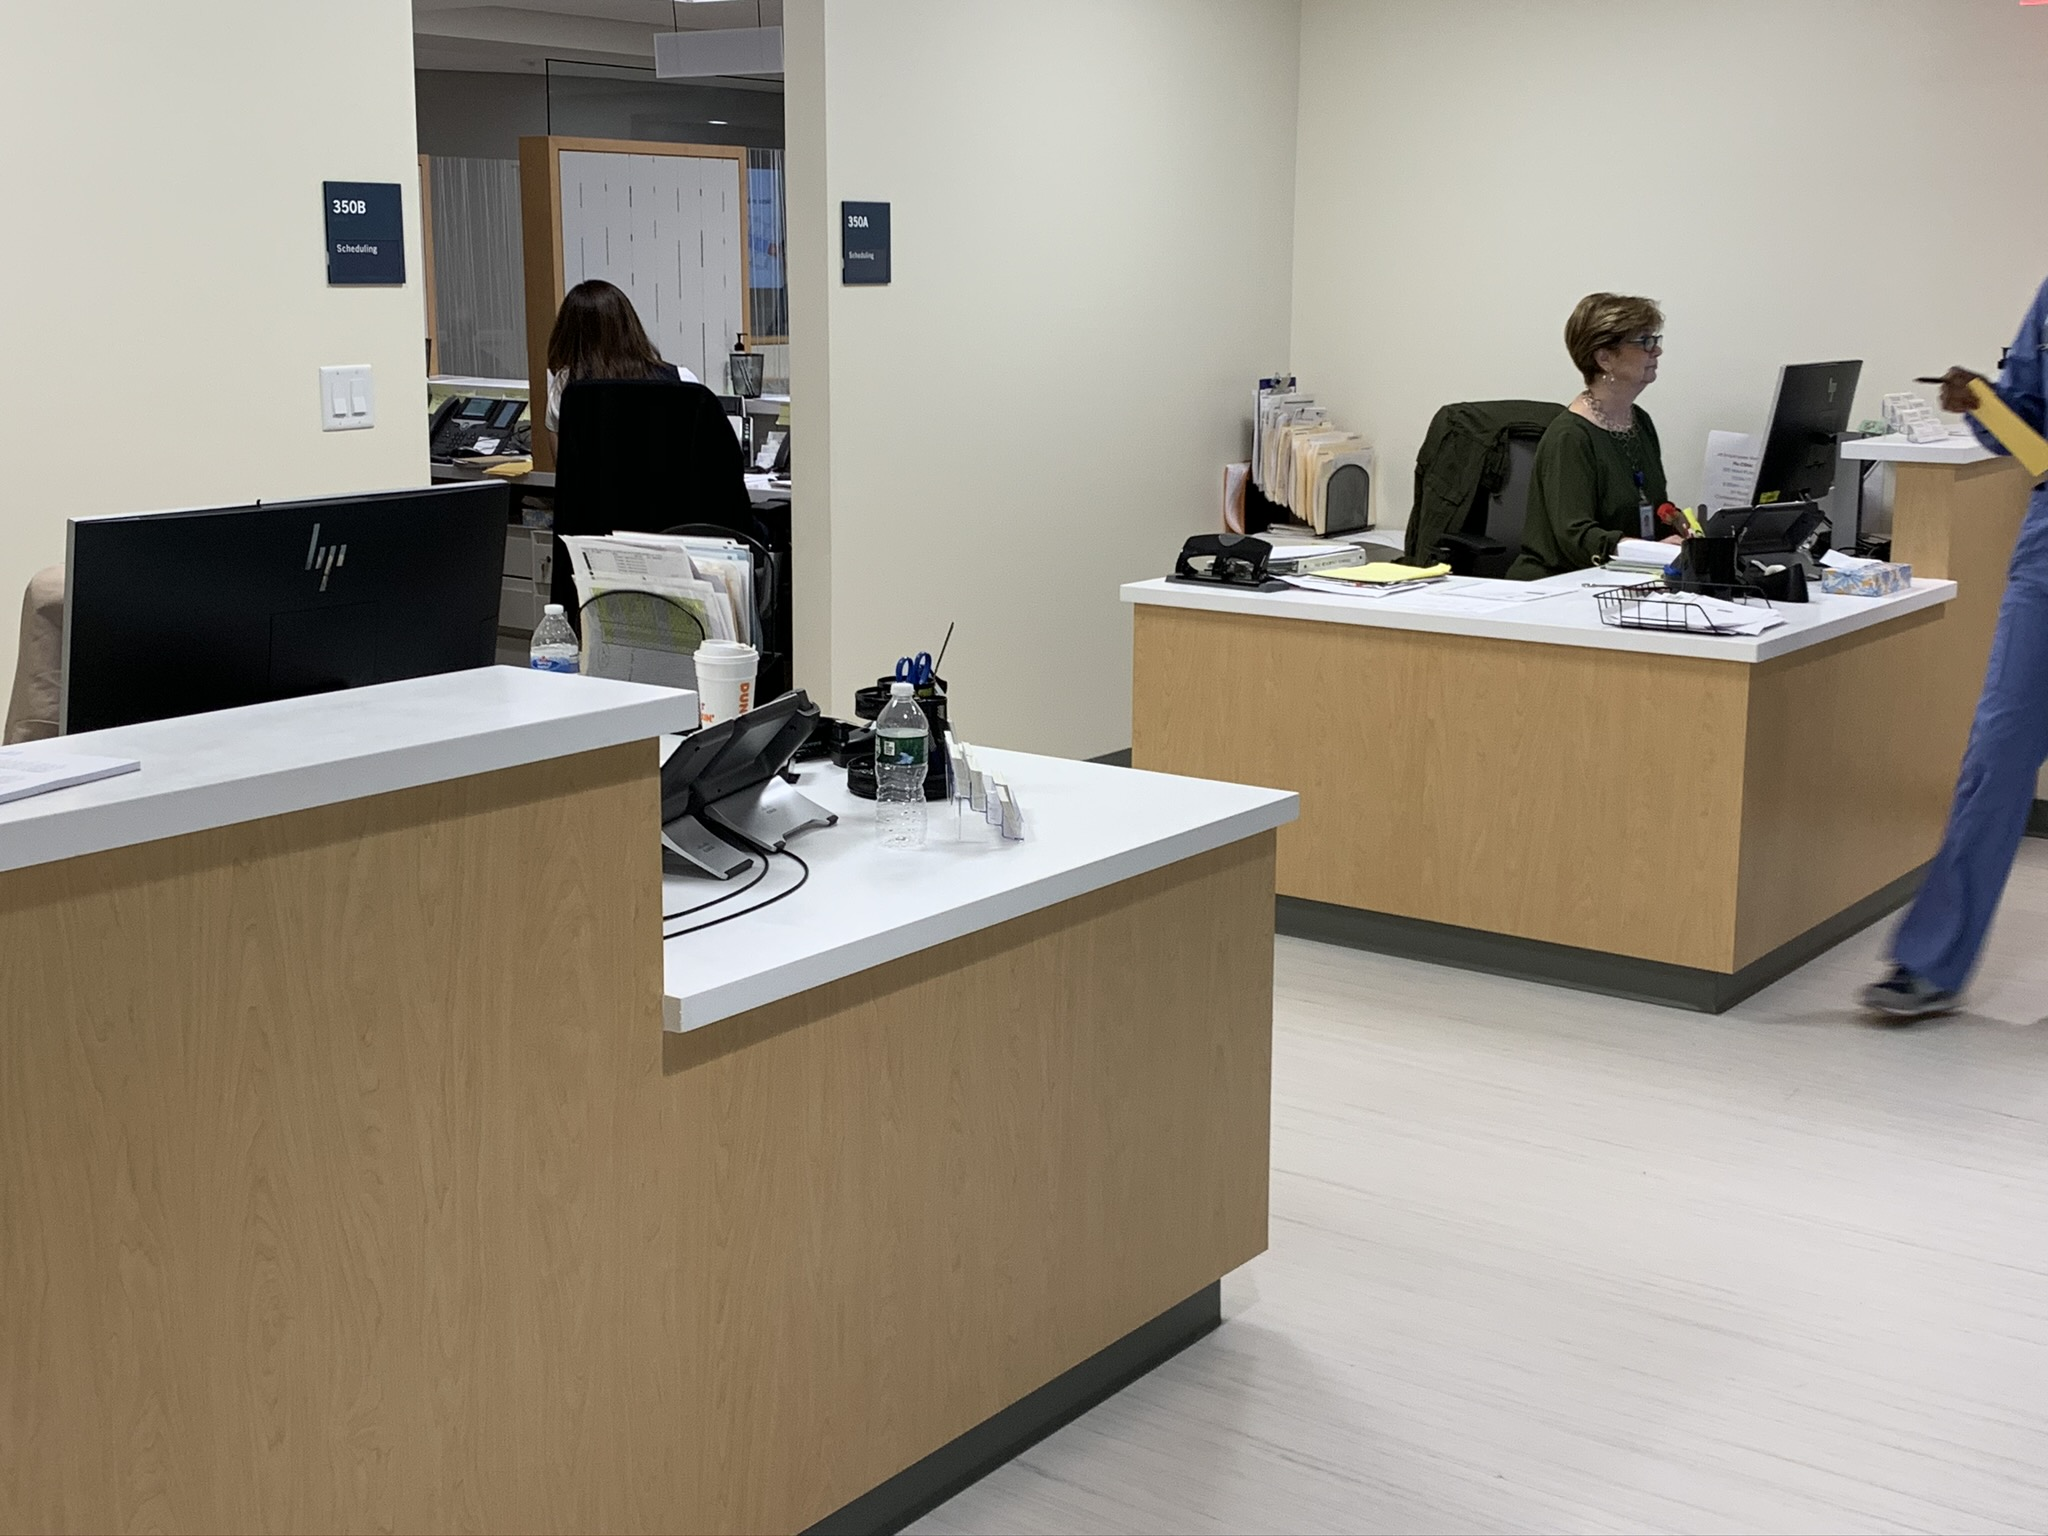 yale-new-haven-med-center-img-IMG_1146